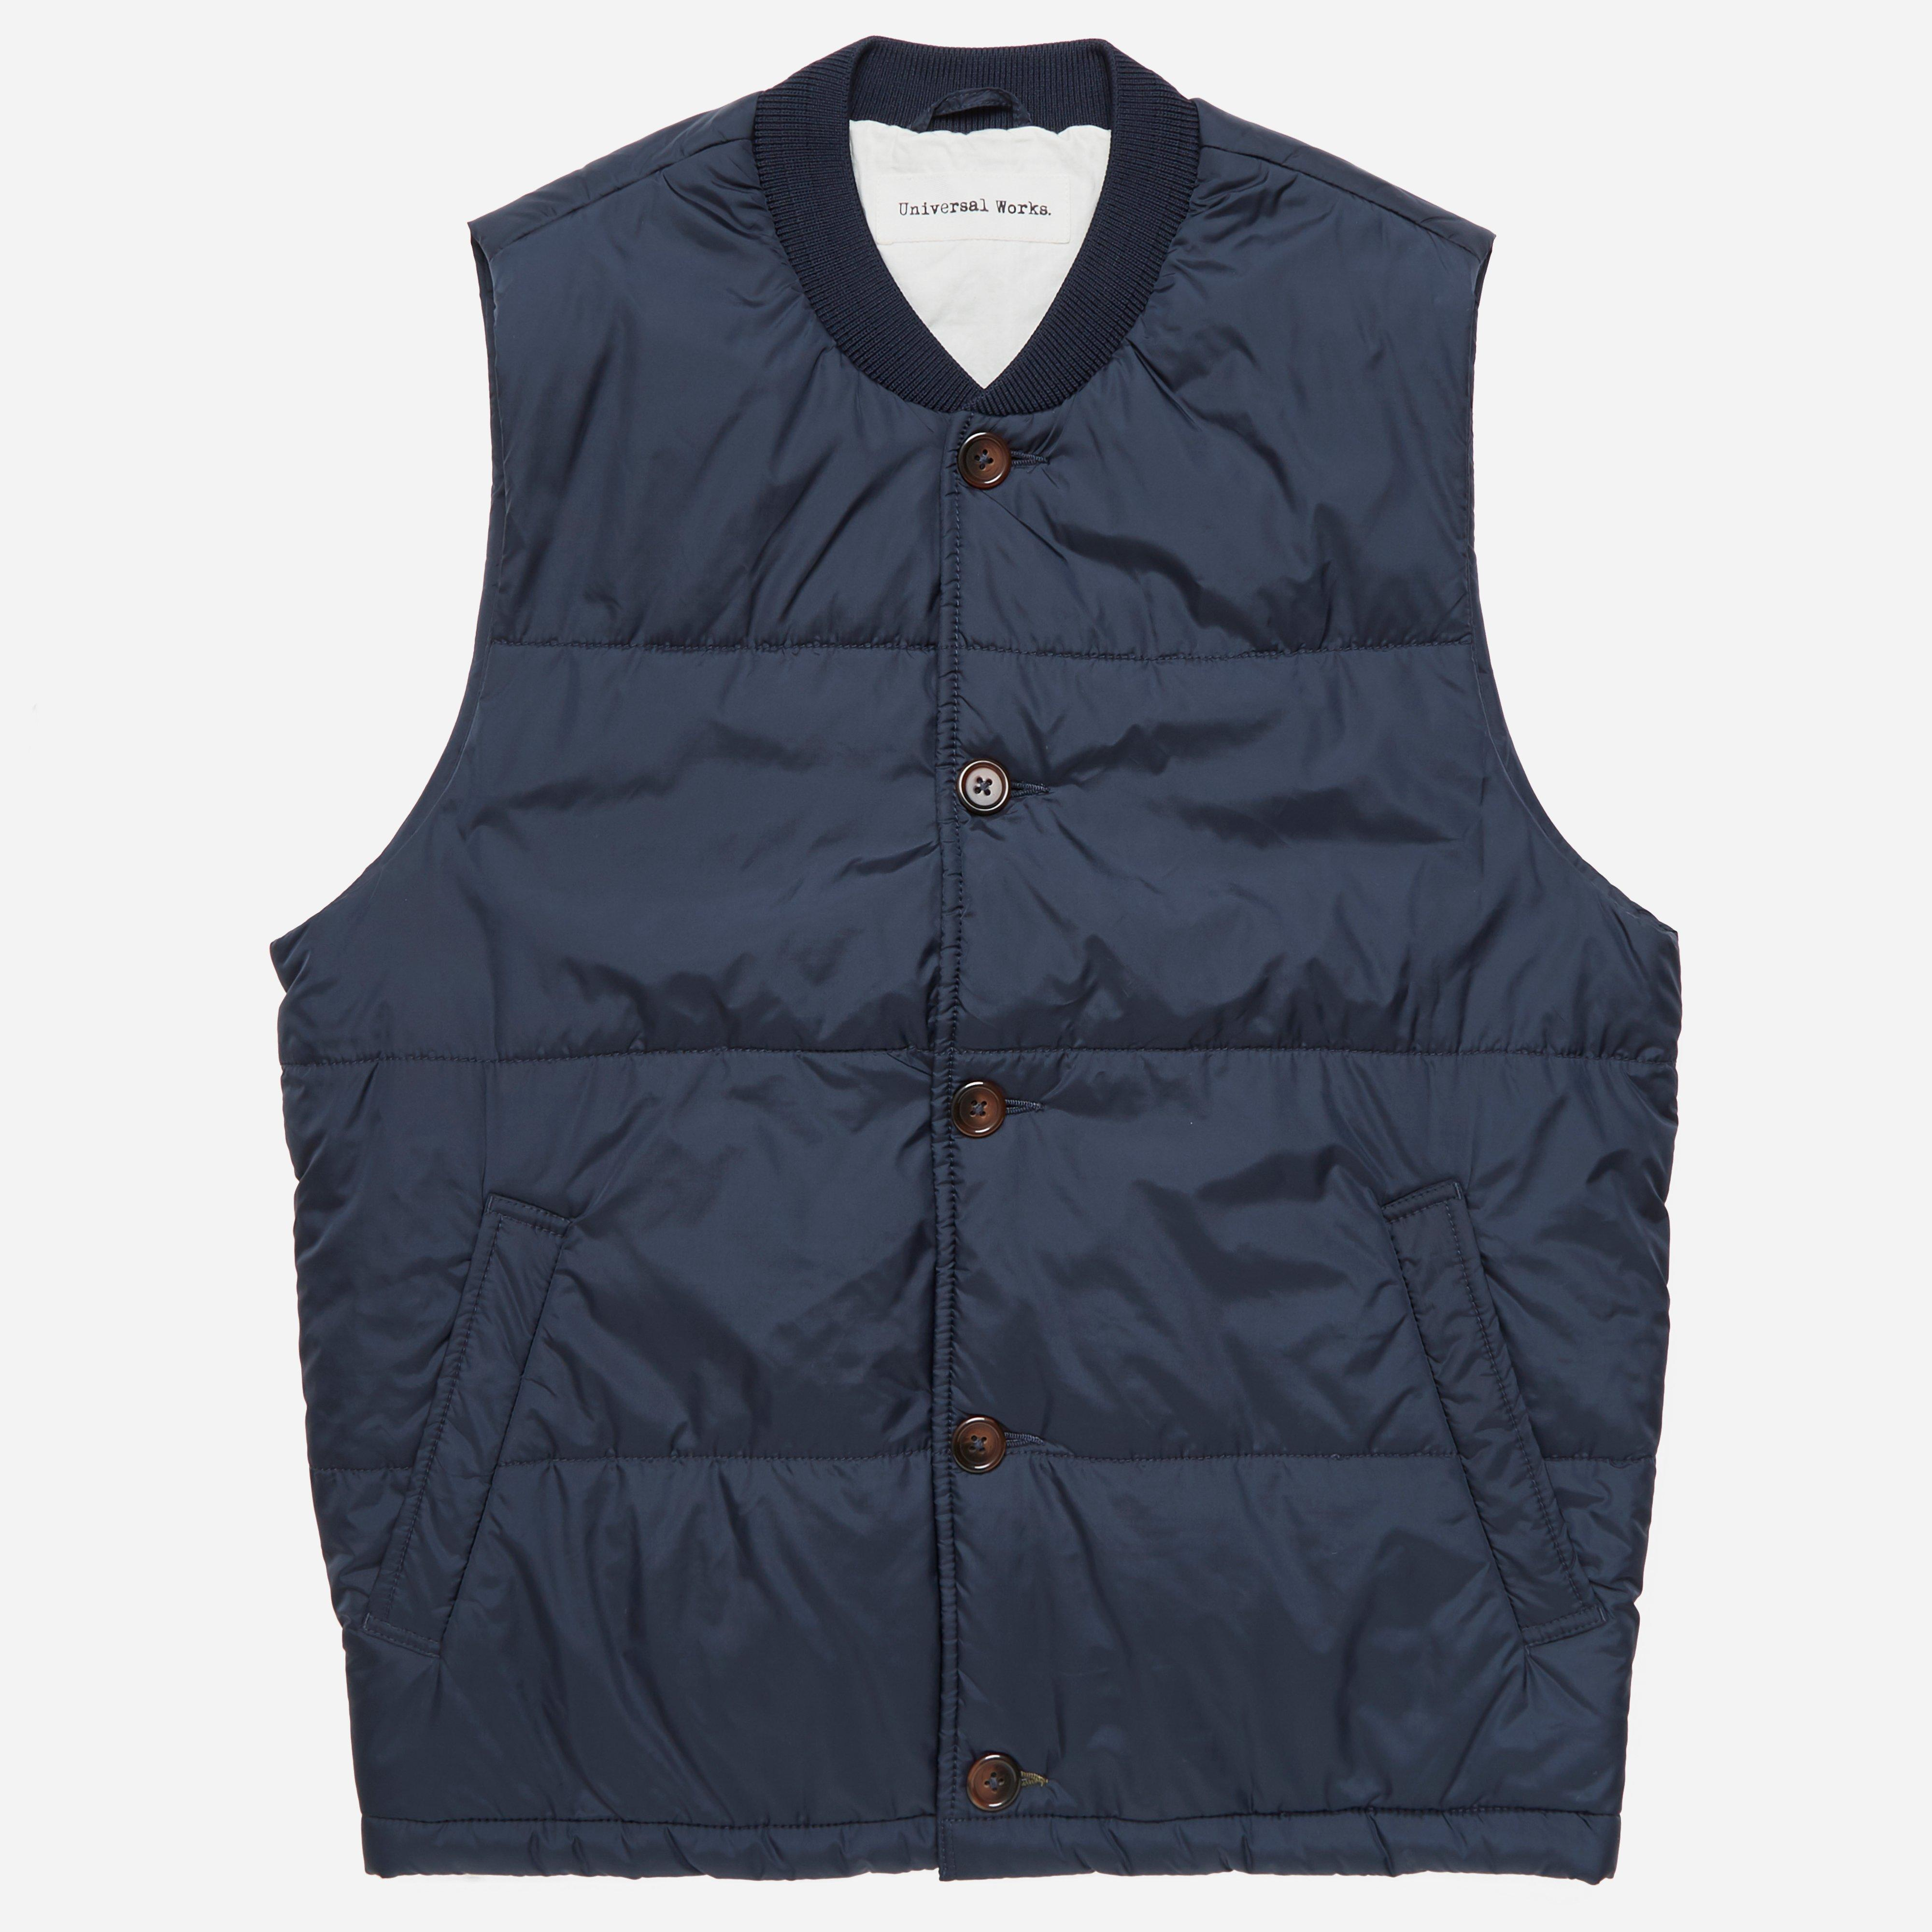 Universal Works Italian Nylon Quilted Gilet